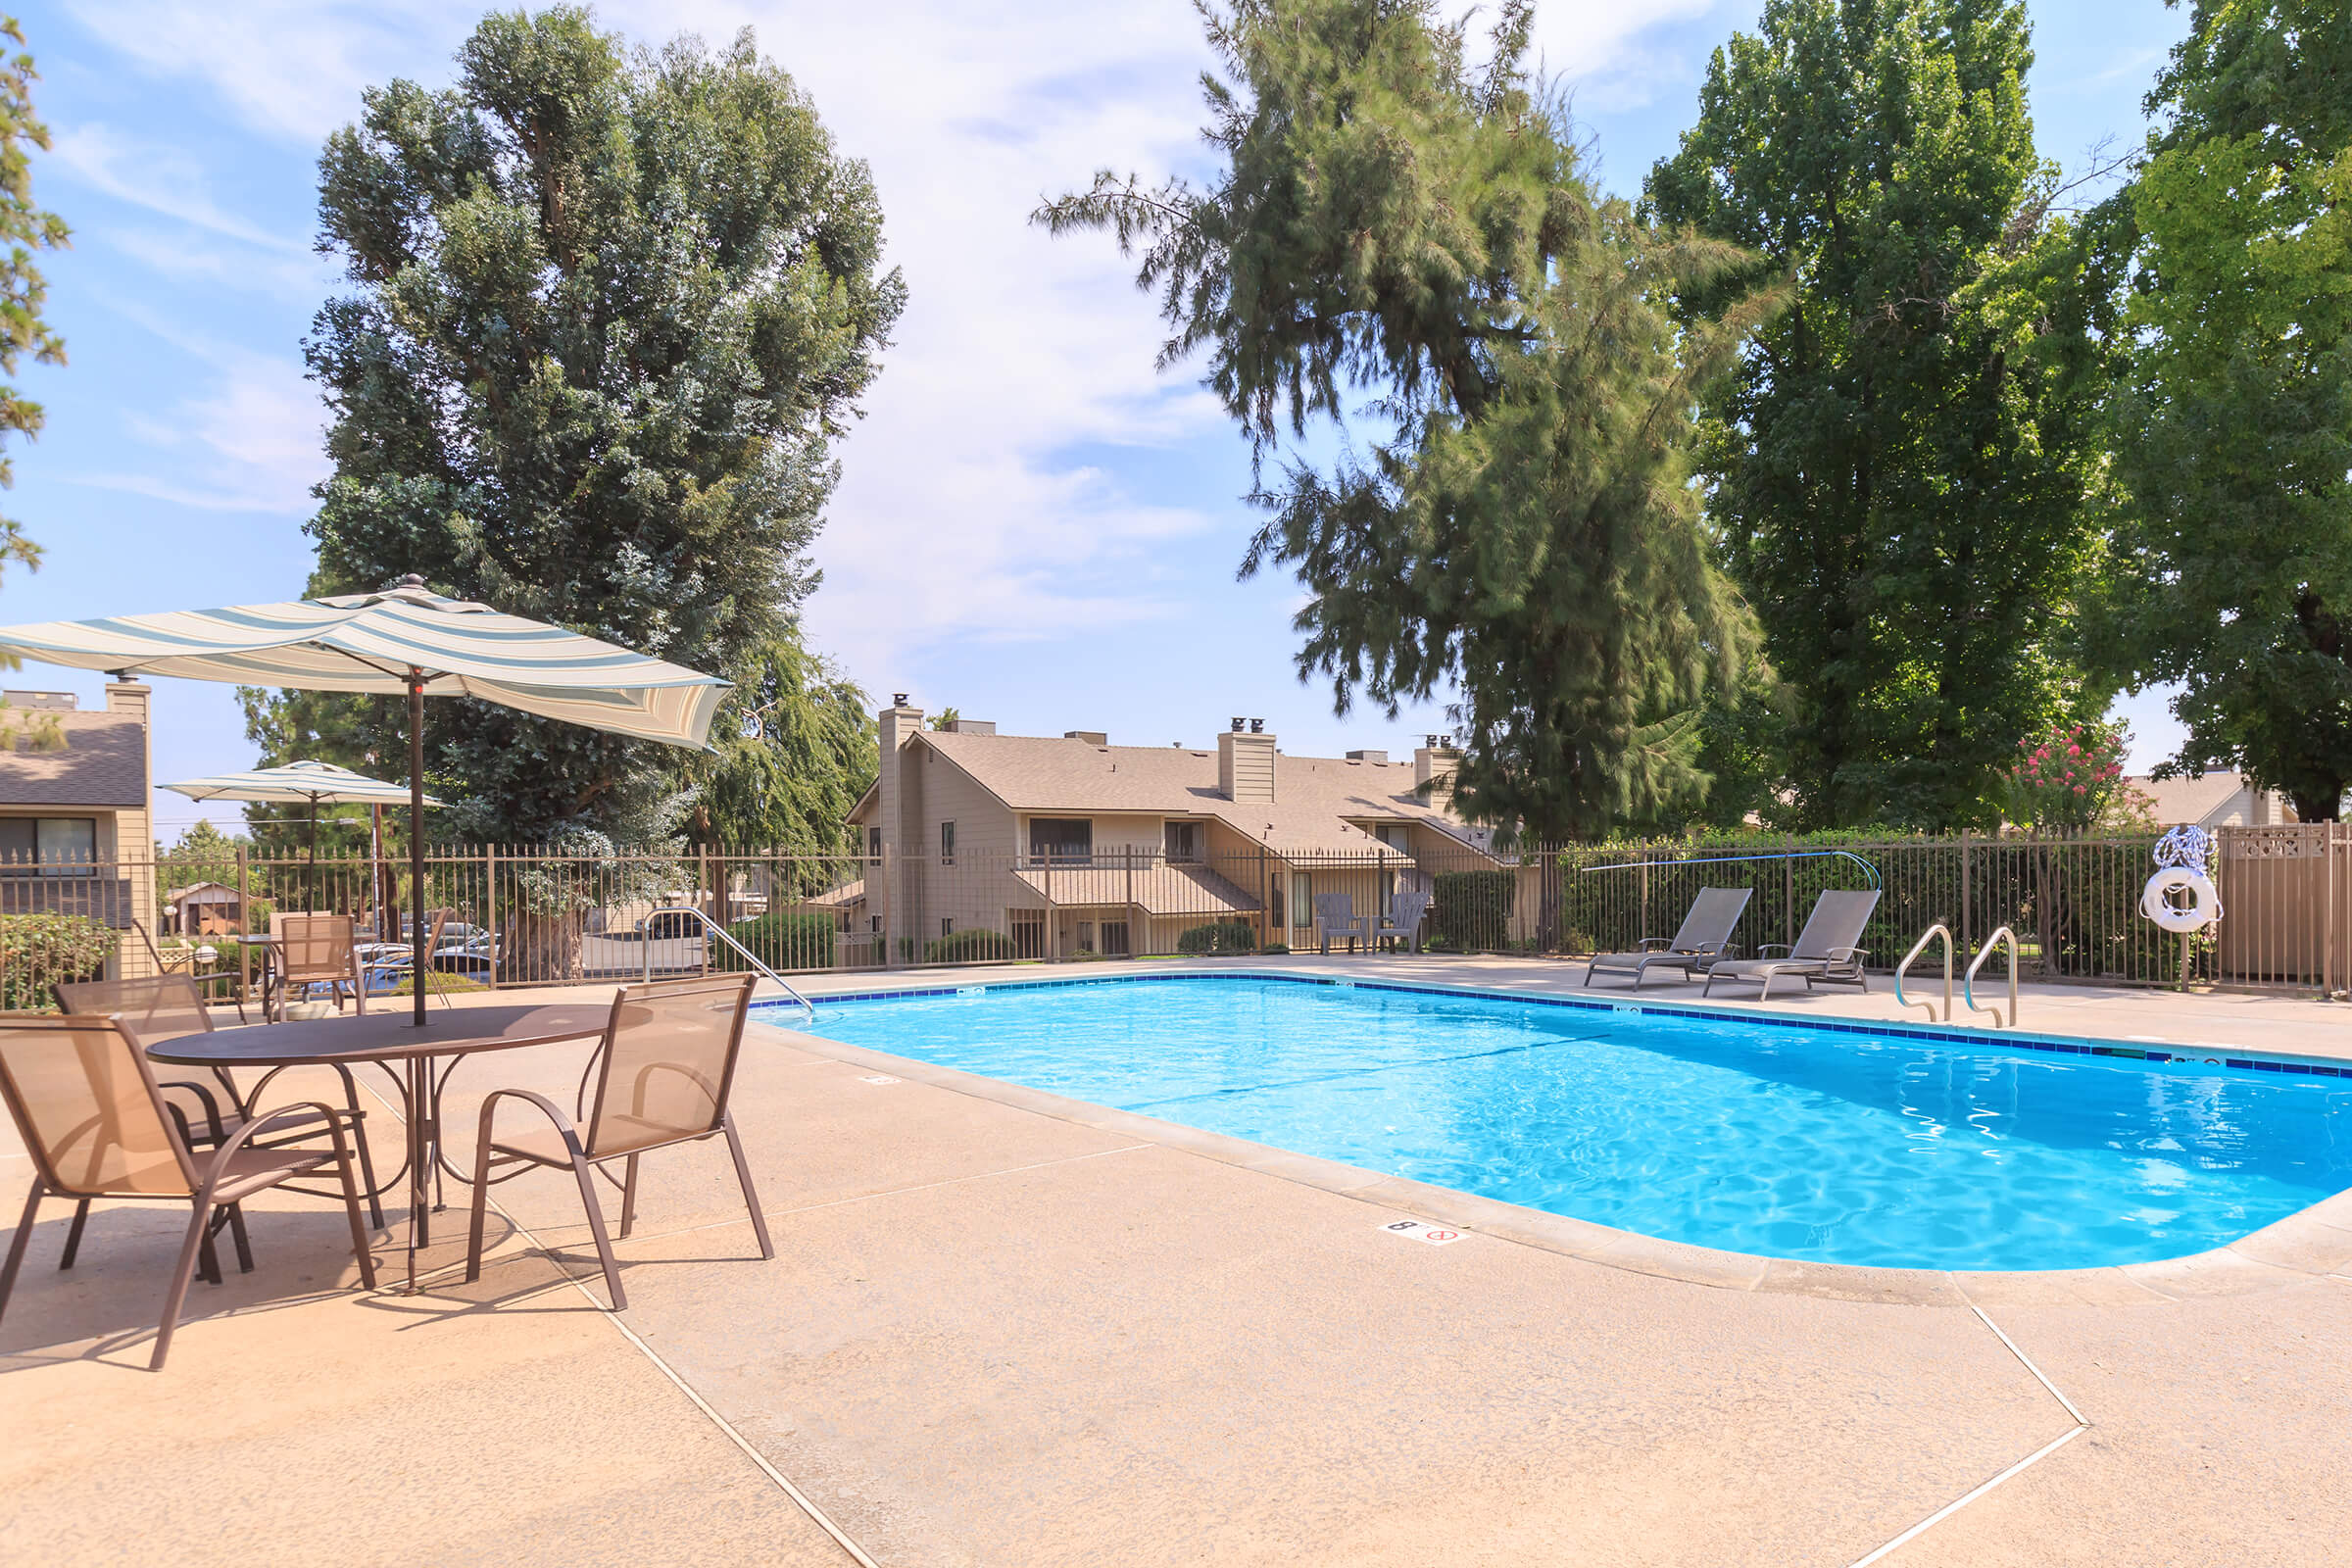 Willow Park Apartments Apartments For Rent In Fresno Ca